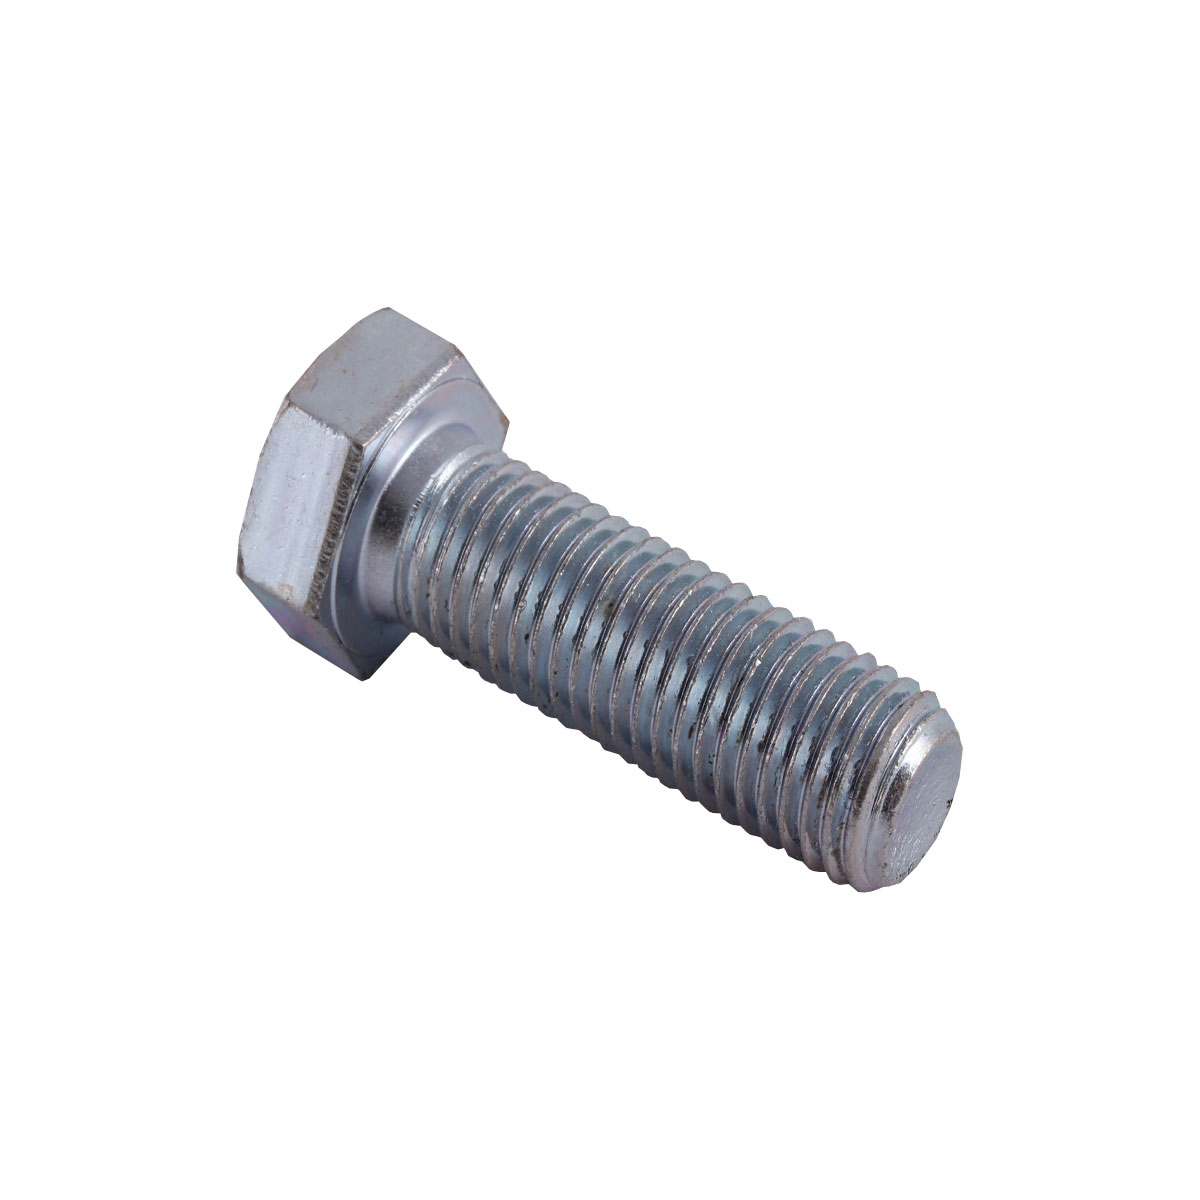 Ss316 hex head set screws